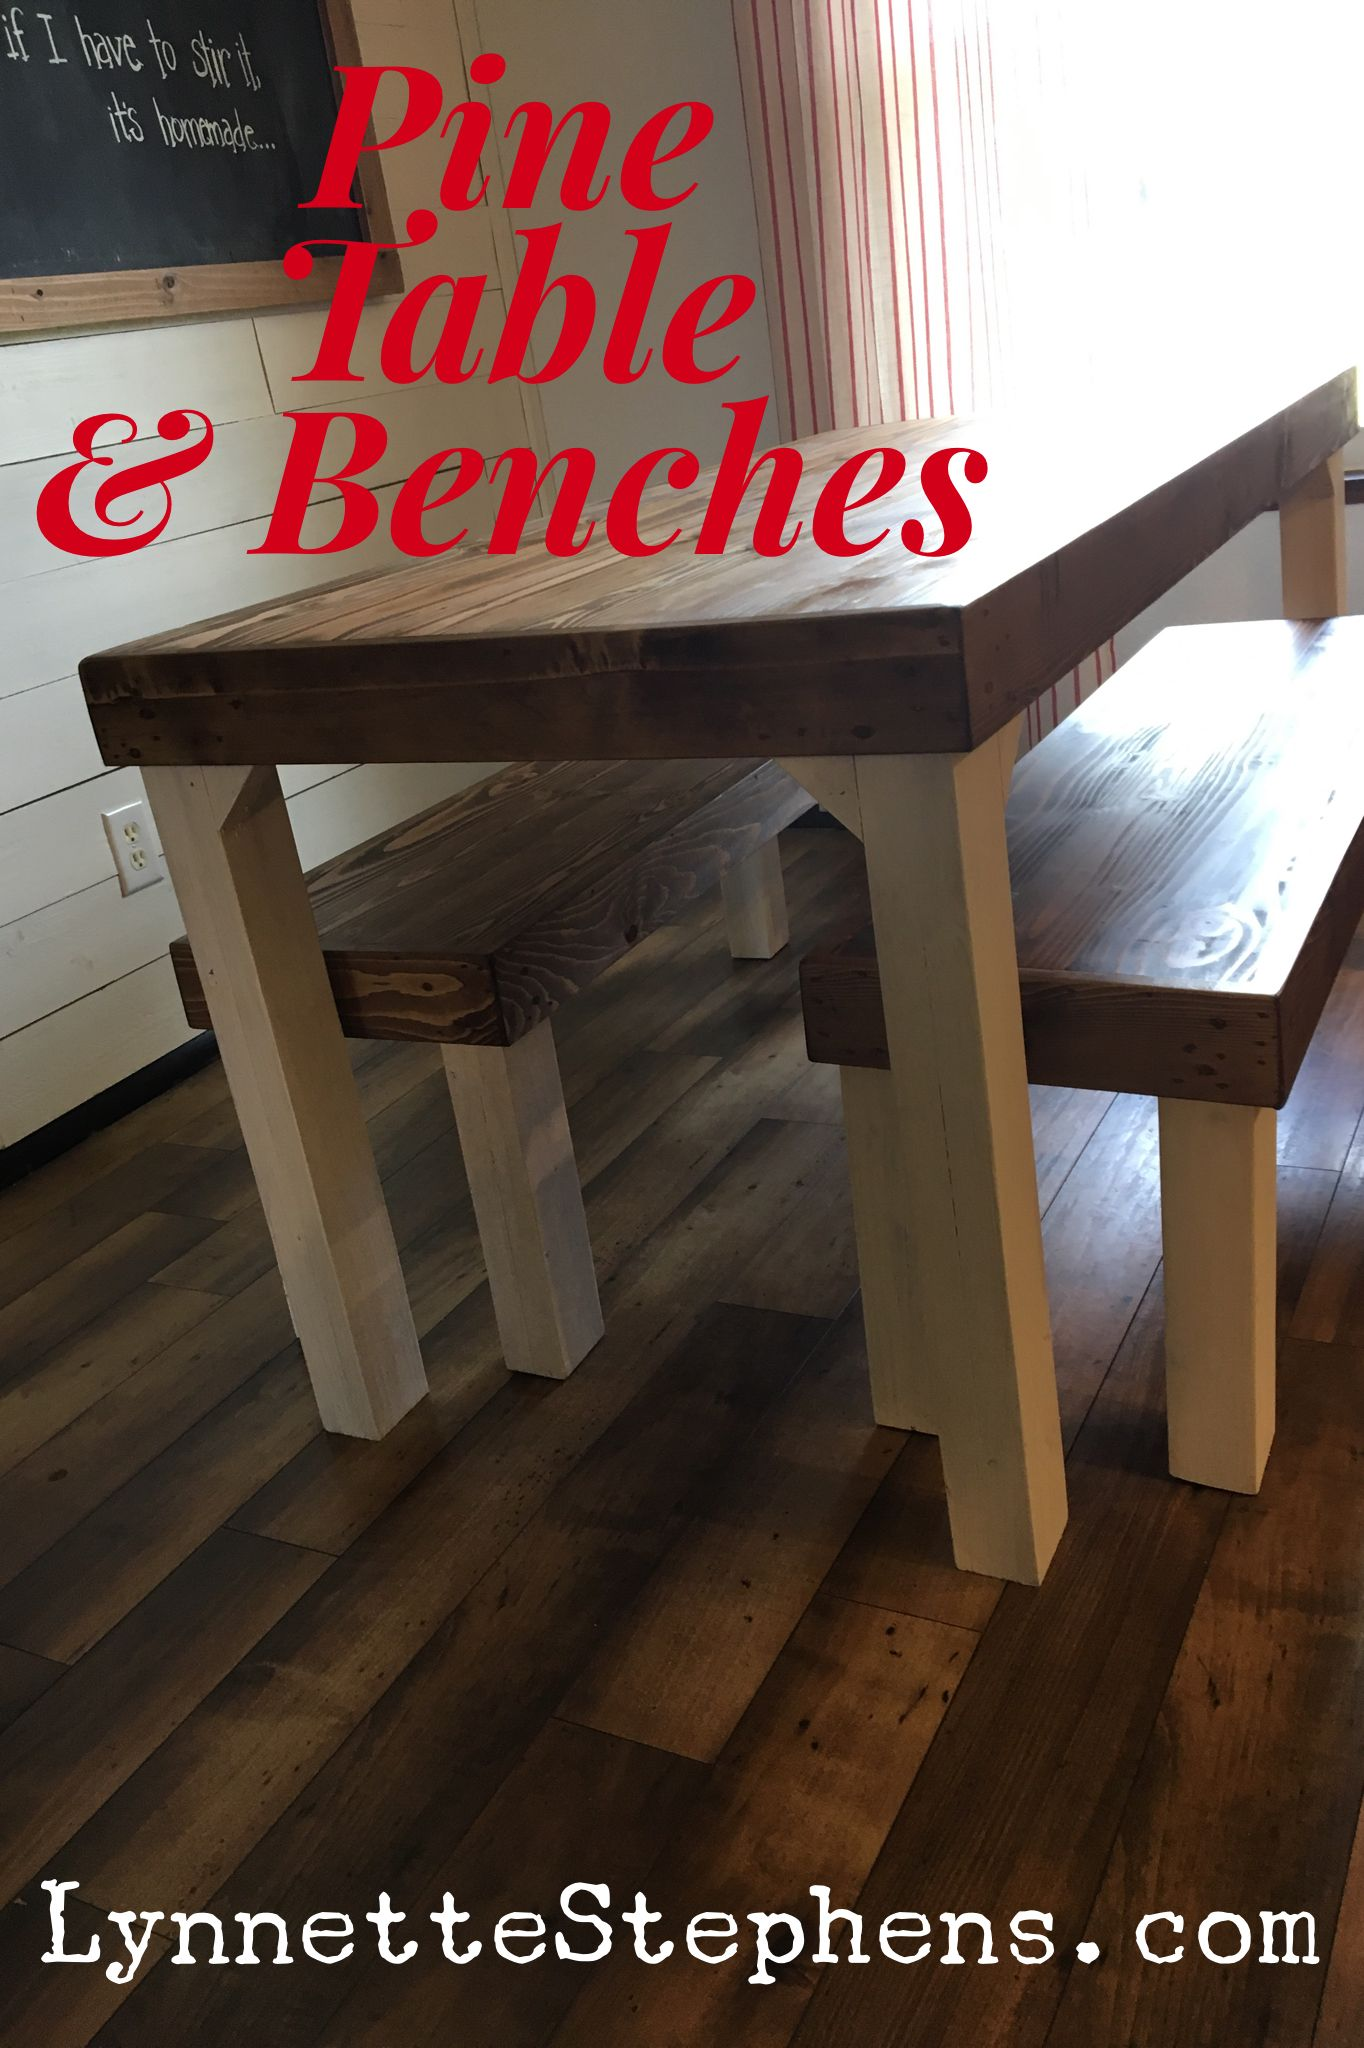 You Can Make A Table Benches Like This Using 2x6 Pine Or Douglas Fir For The Table Top And Ben Diy Farmhouse Table Kitchen Table Bench Coffee Table Farmhouse